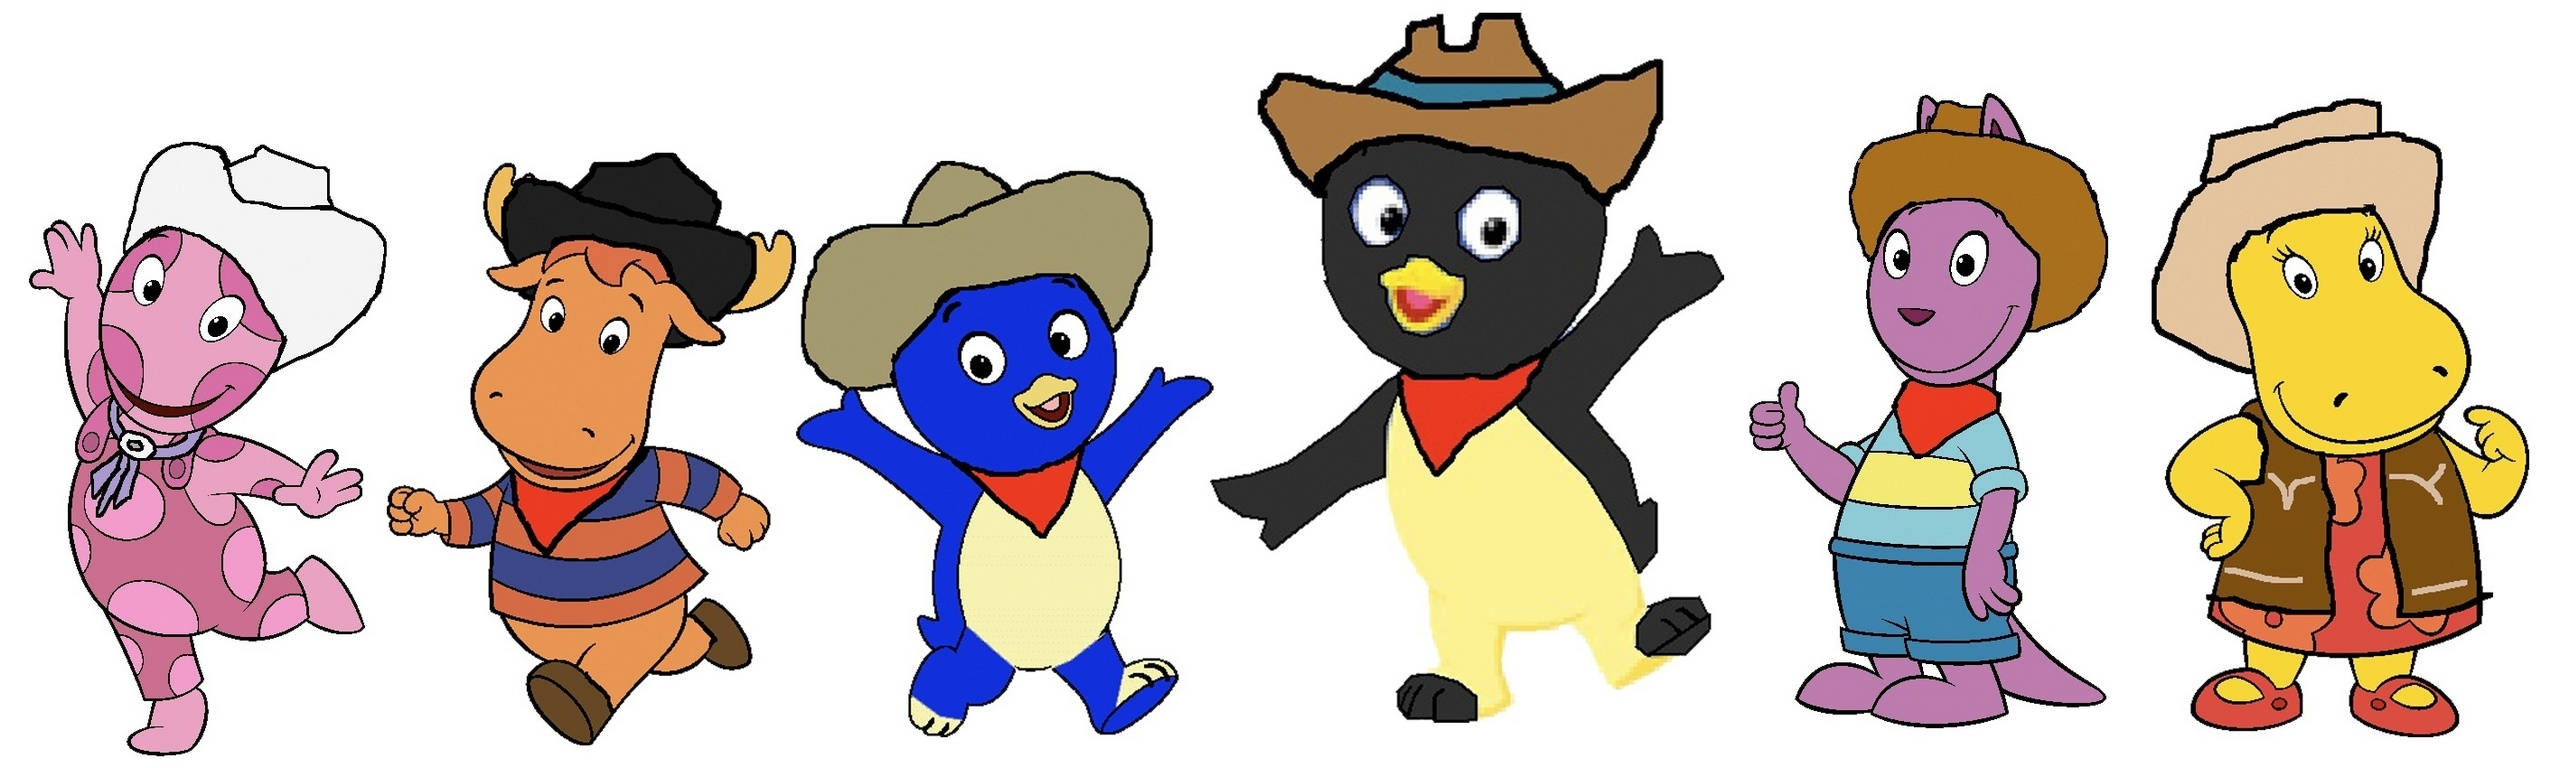 the backyardigans images cowboys and cowgirls hd wallpaper and